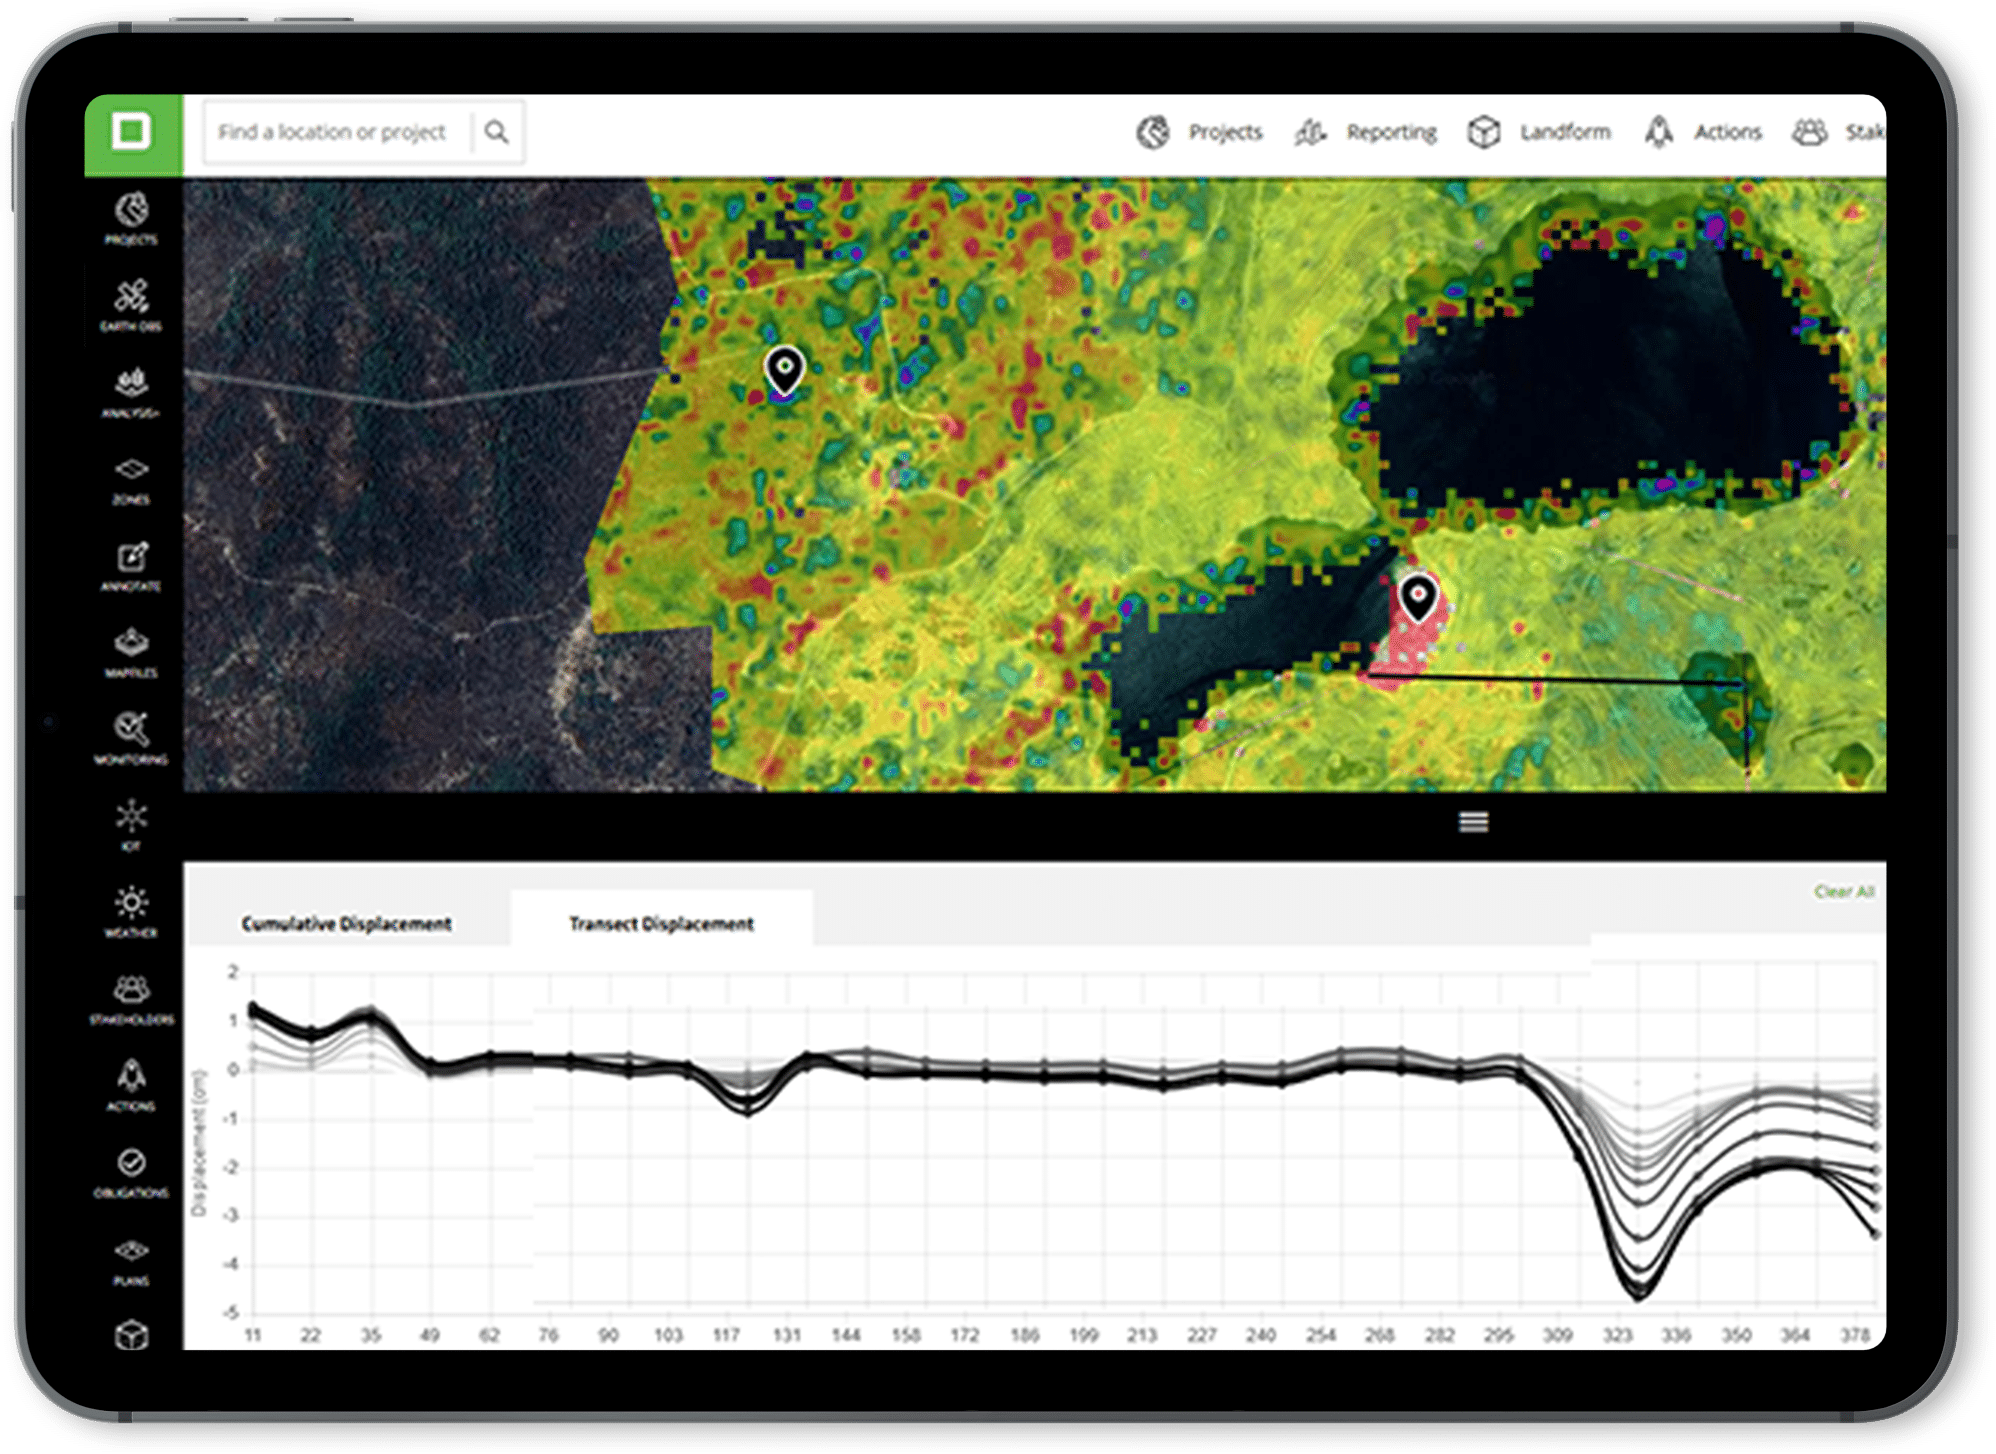 InSAR - Decipher Tailings Monitoring - Wesfarmers